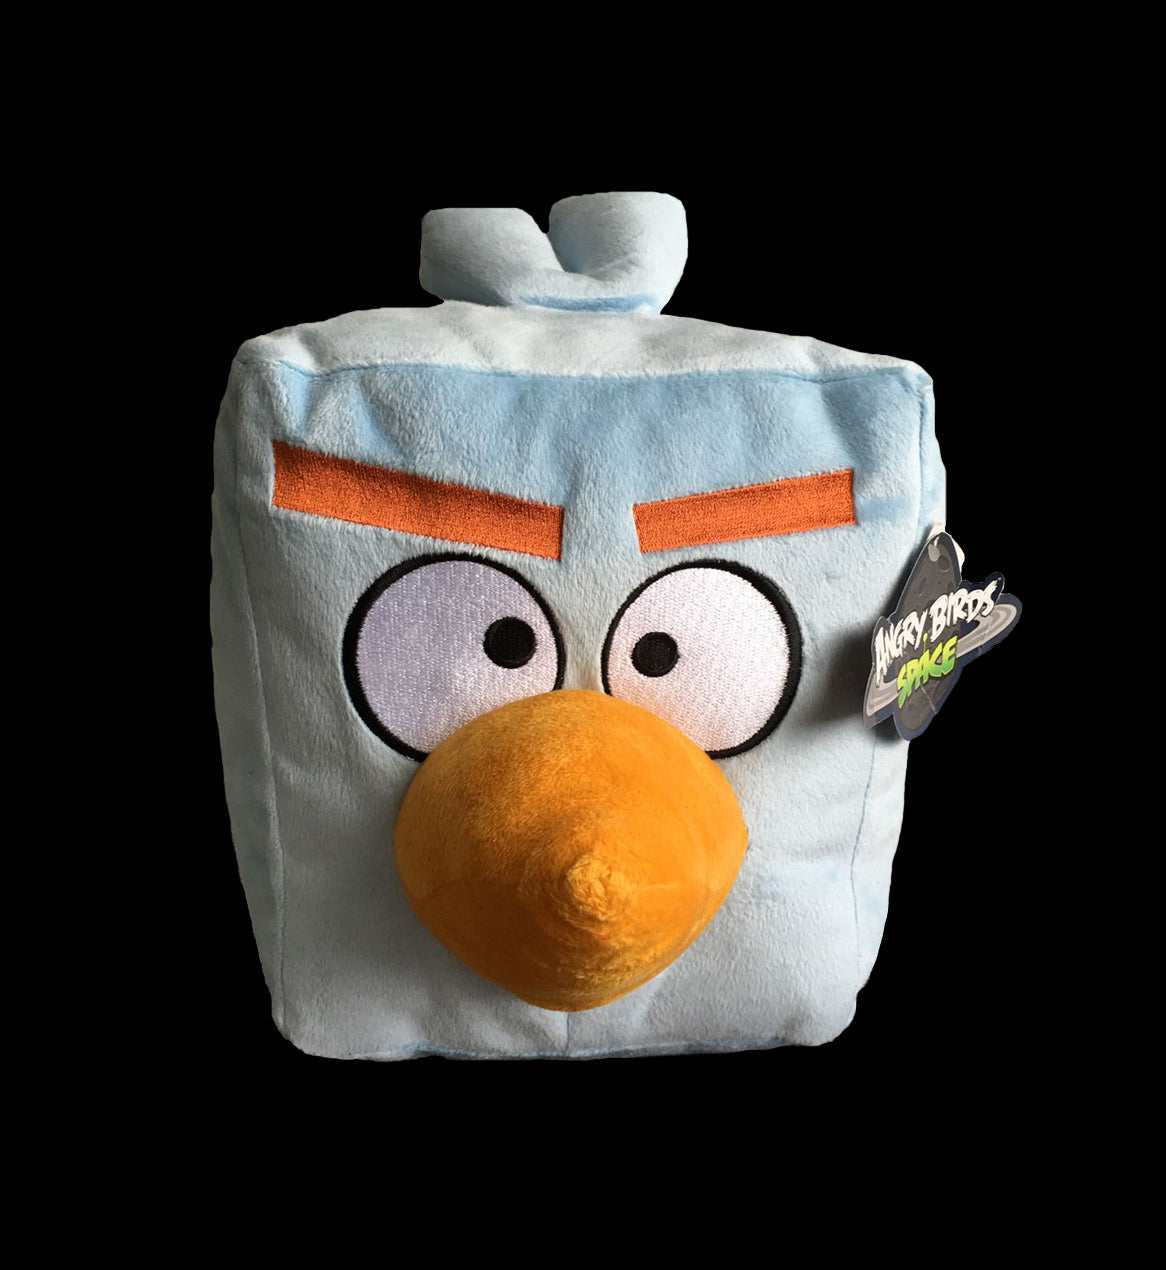 Big Ice - ANGRY BIRDS Black Stuffed Plush